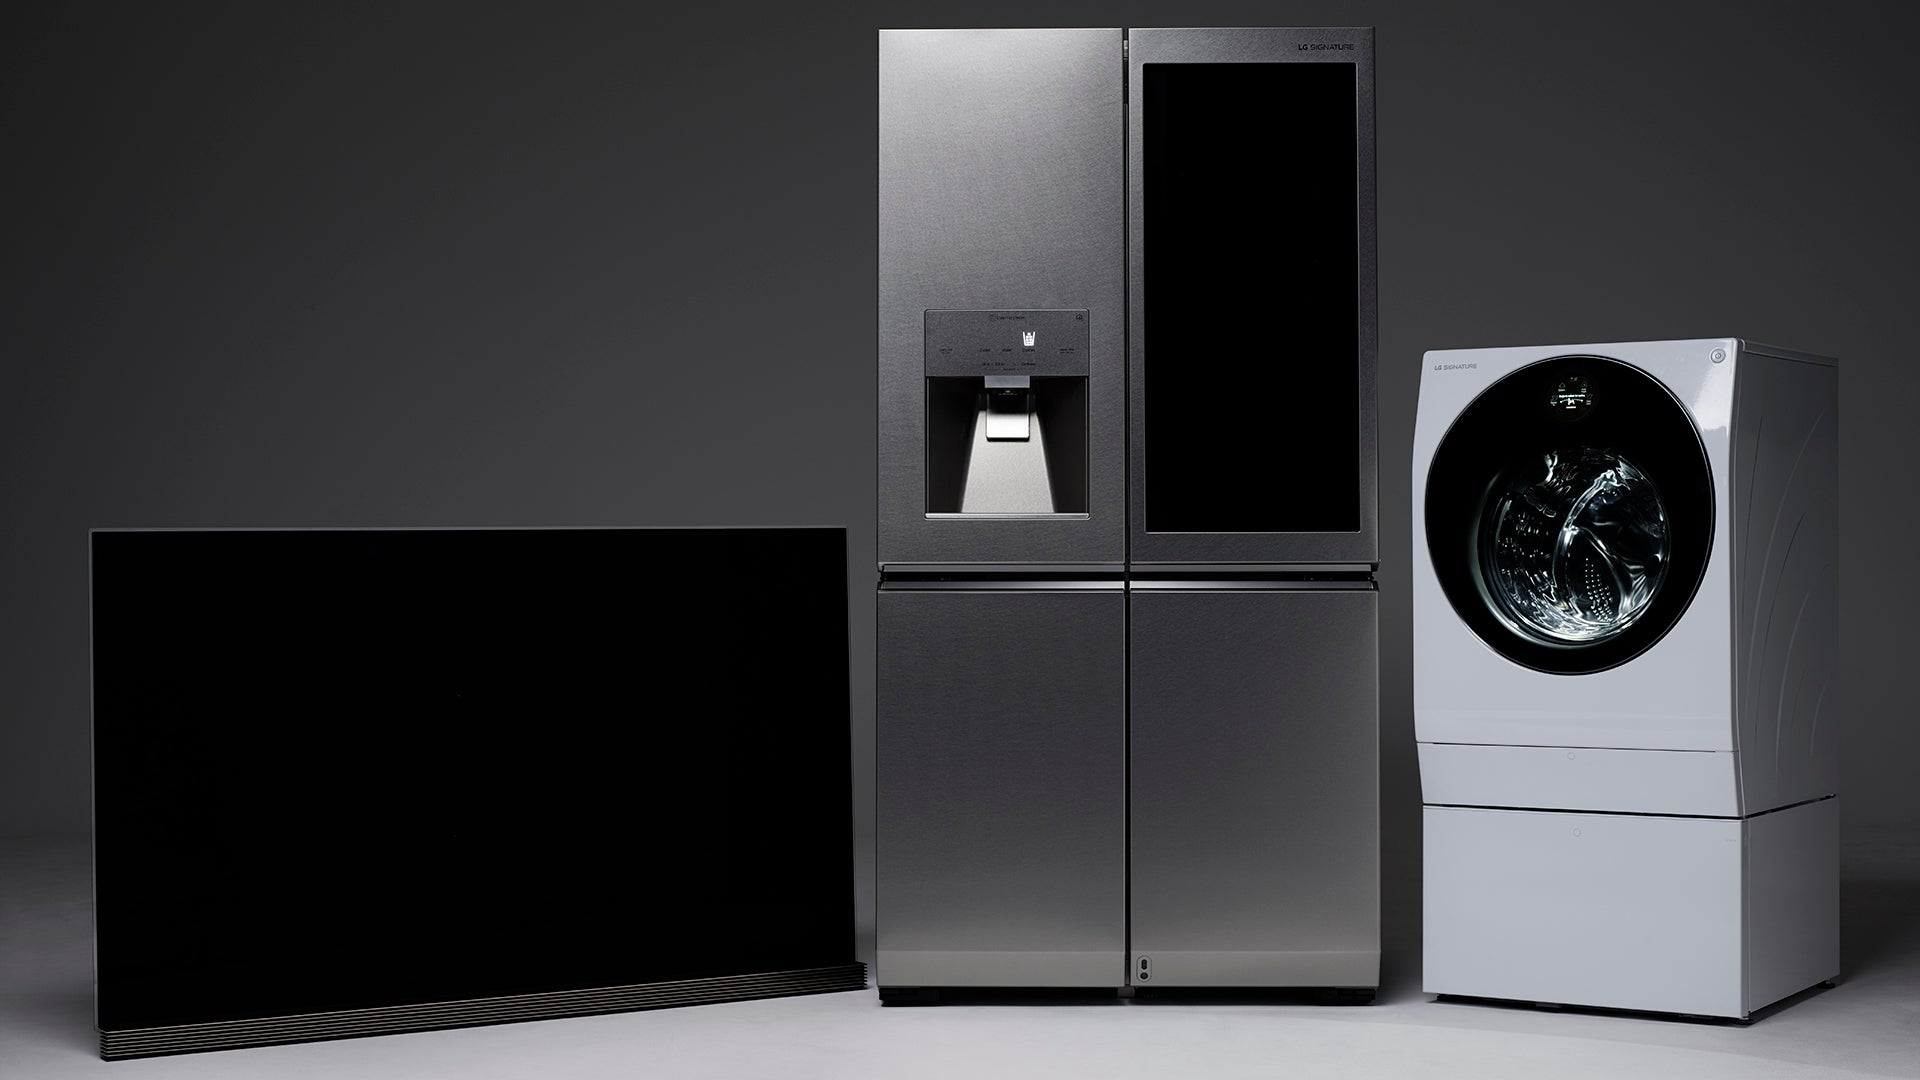 Lg Signature Range Makes Your Kitchen Feel Inadequate